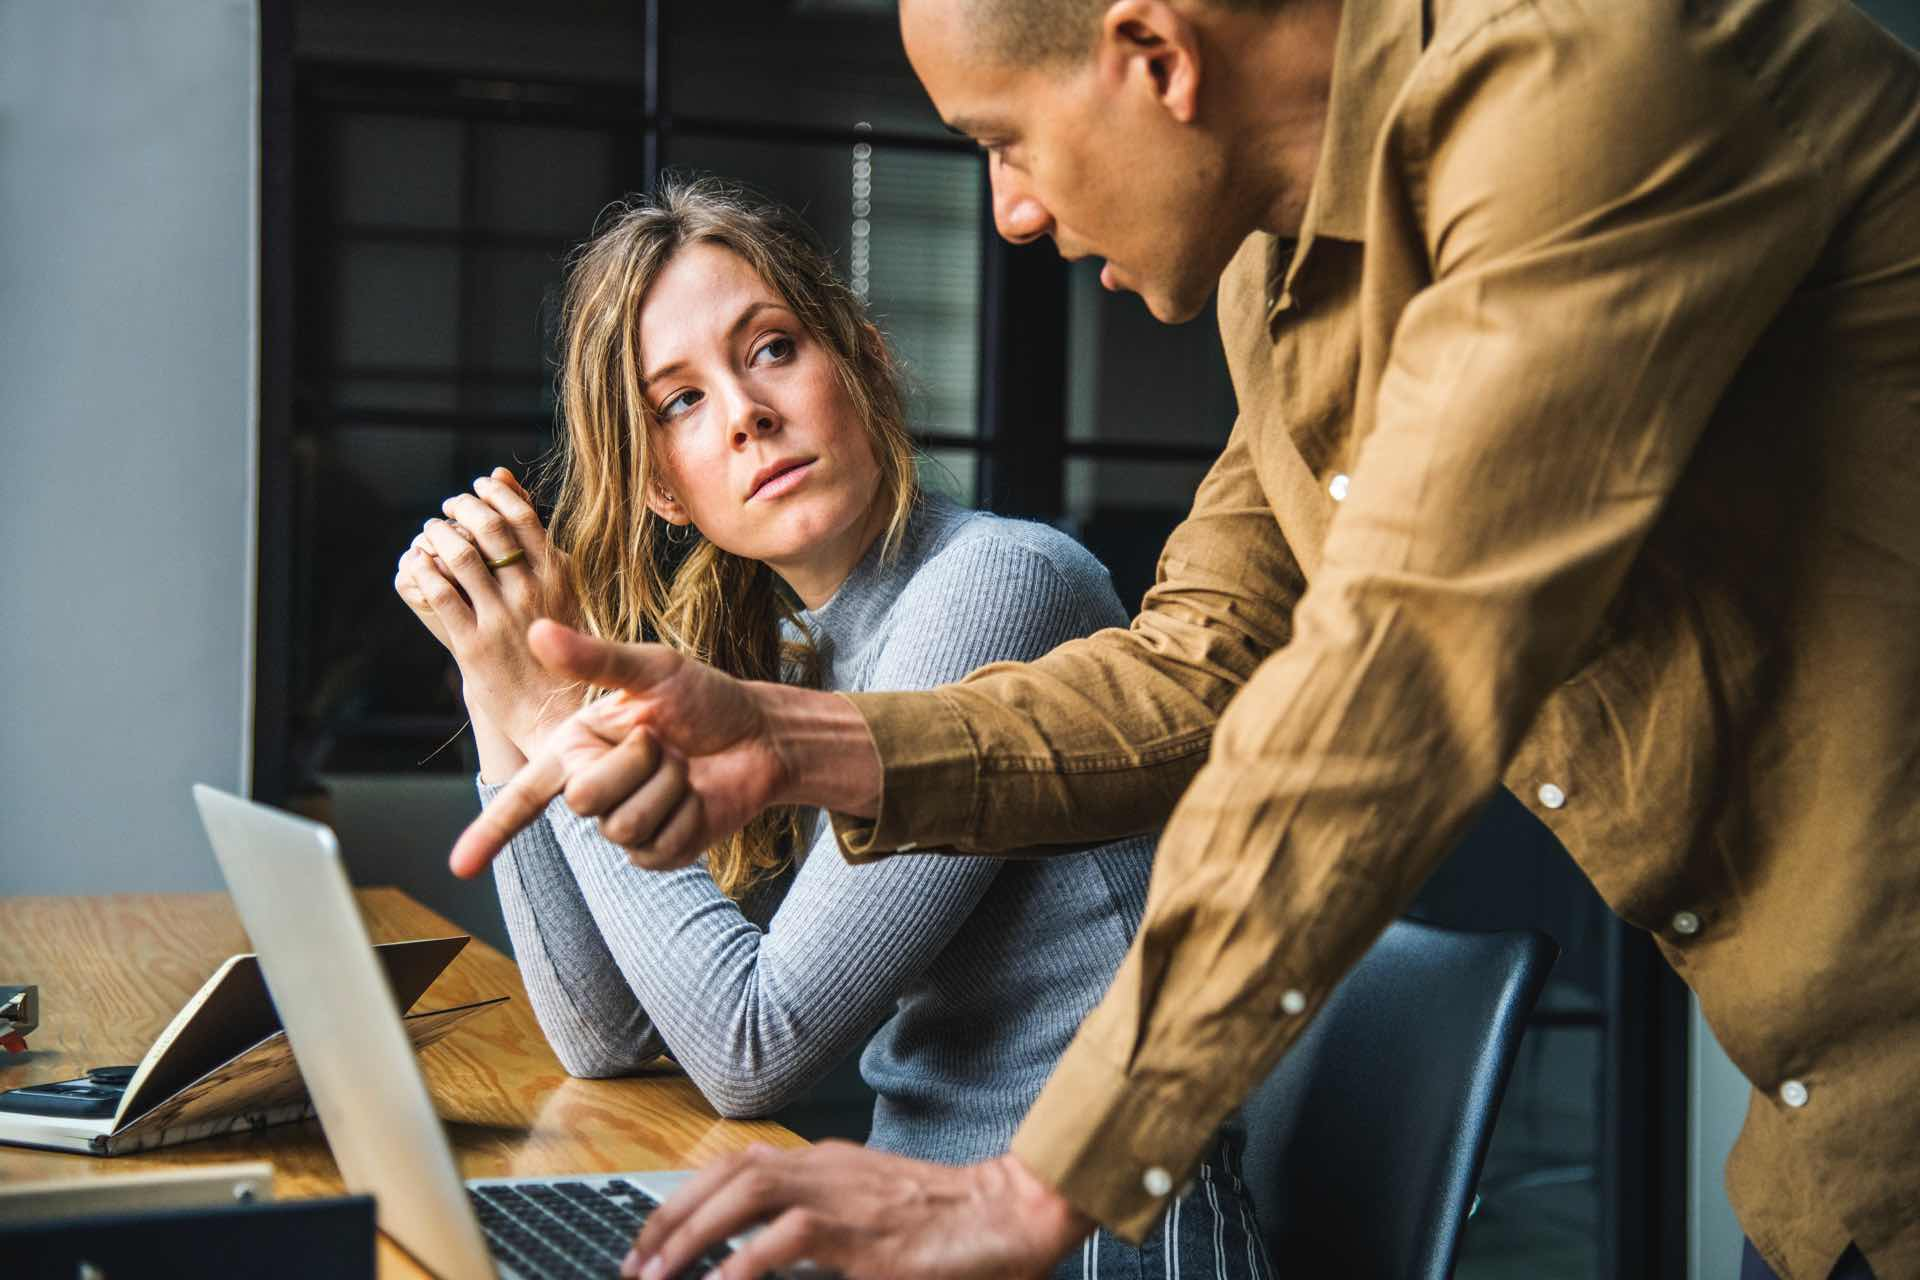 Conflicts In The Workplace: Sources And Solutions